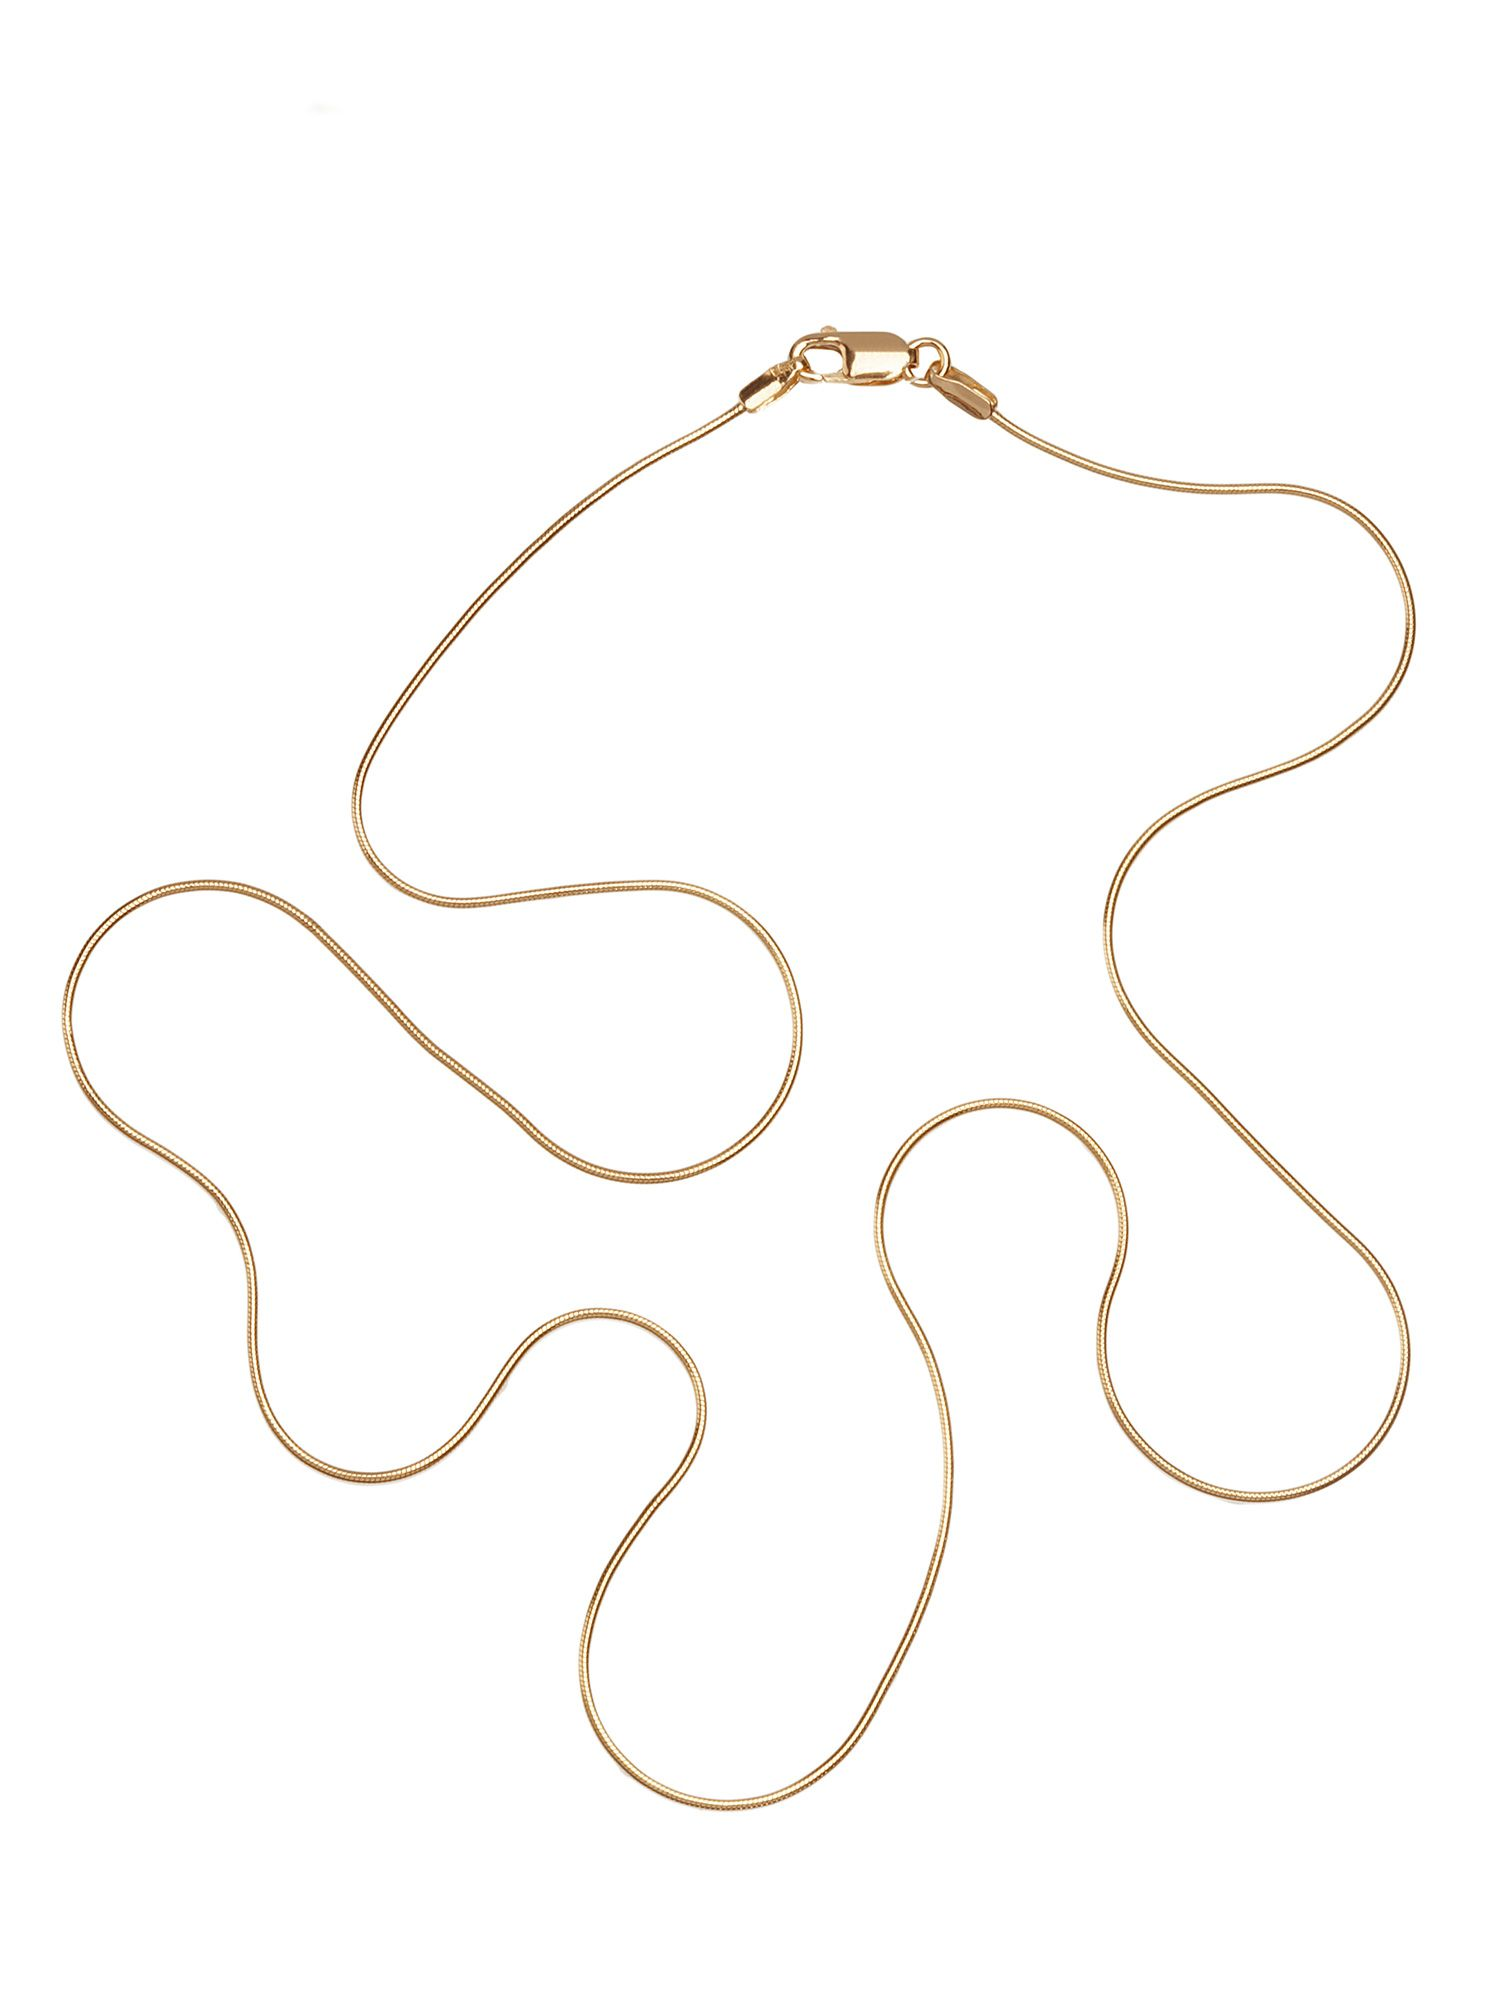 Goldsmiths 9ct gold 18 inch snake chain, product image